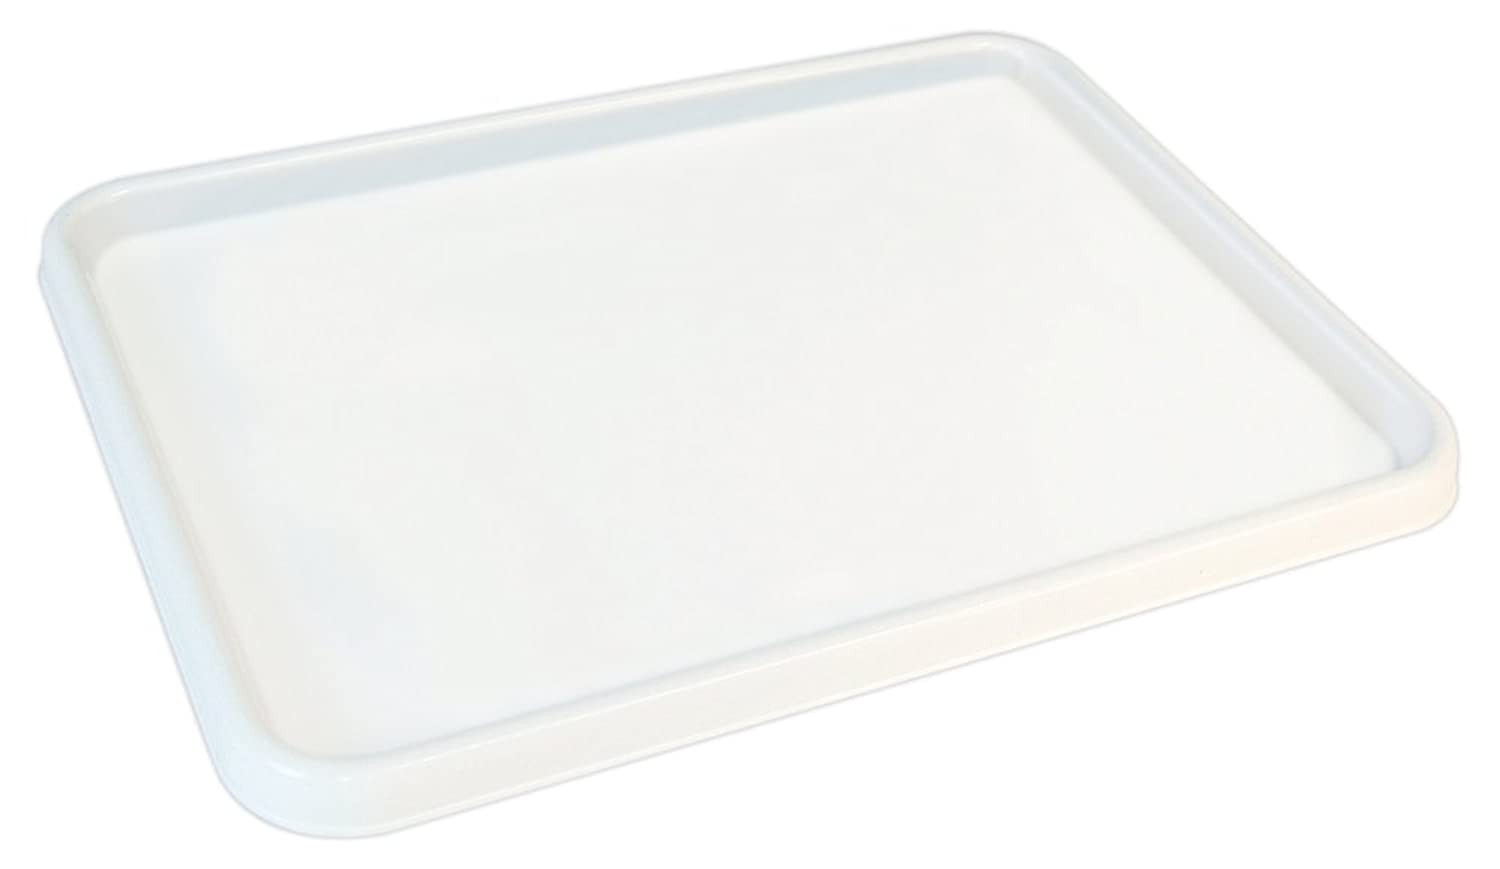 Sargent Art 22-9803 Large Flat Palette, White, 9-3/4-Inch by 13-Inch